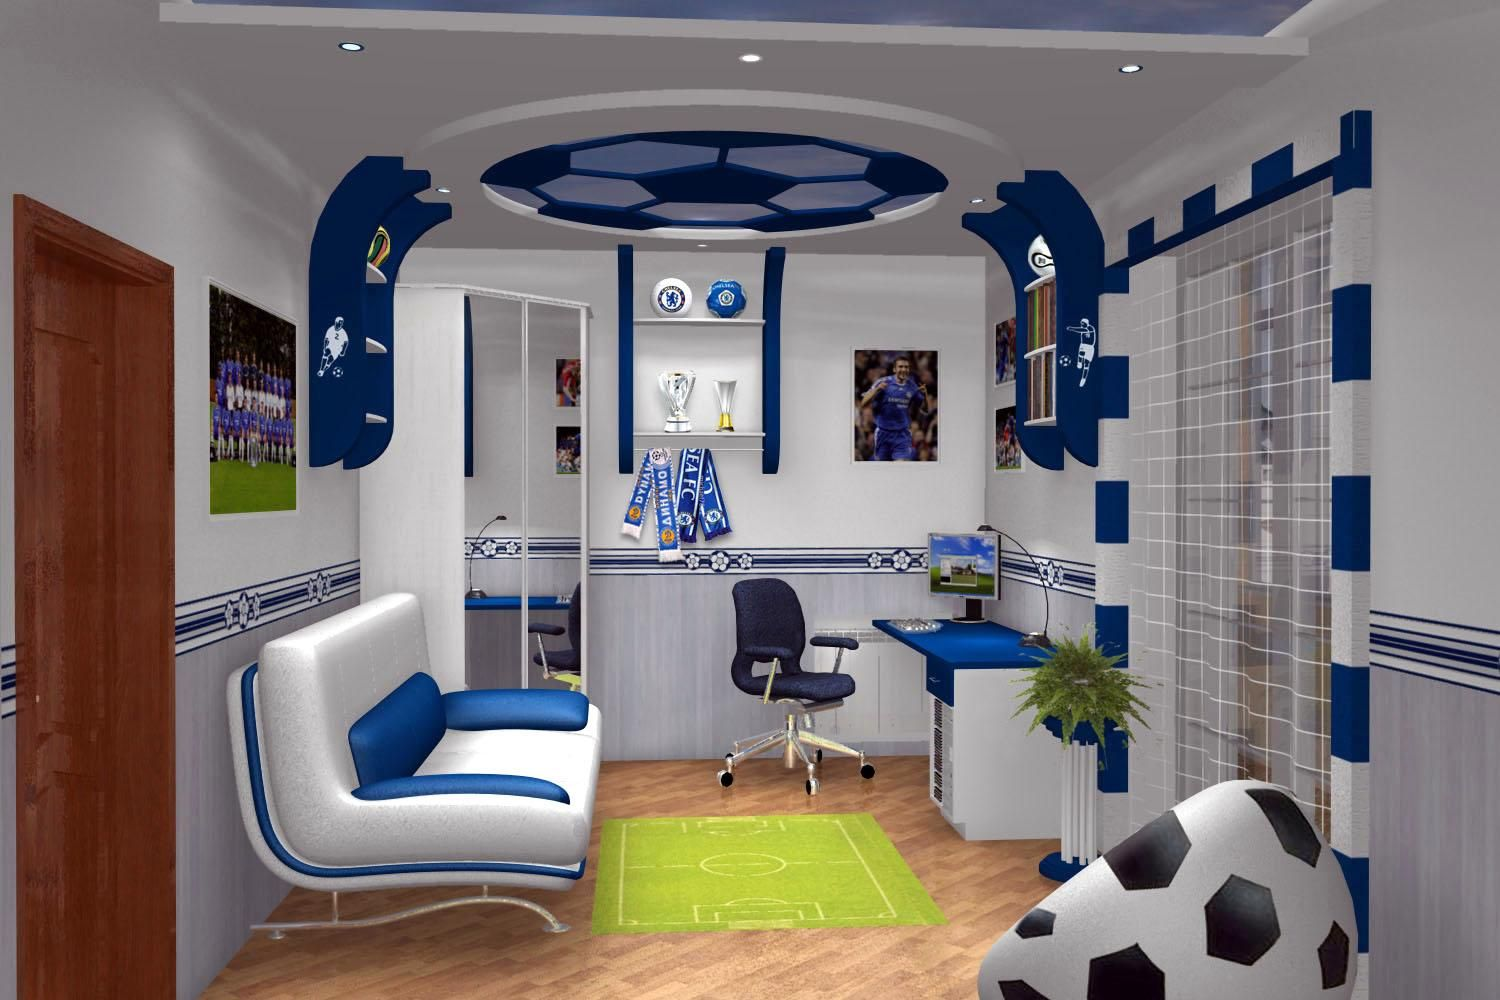 Stylish Soccer Themed Bedroom Design For Boys 34 Decomagz Soccer Themed Bedroom Soccer Bedroom Soccer Room